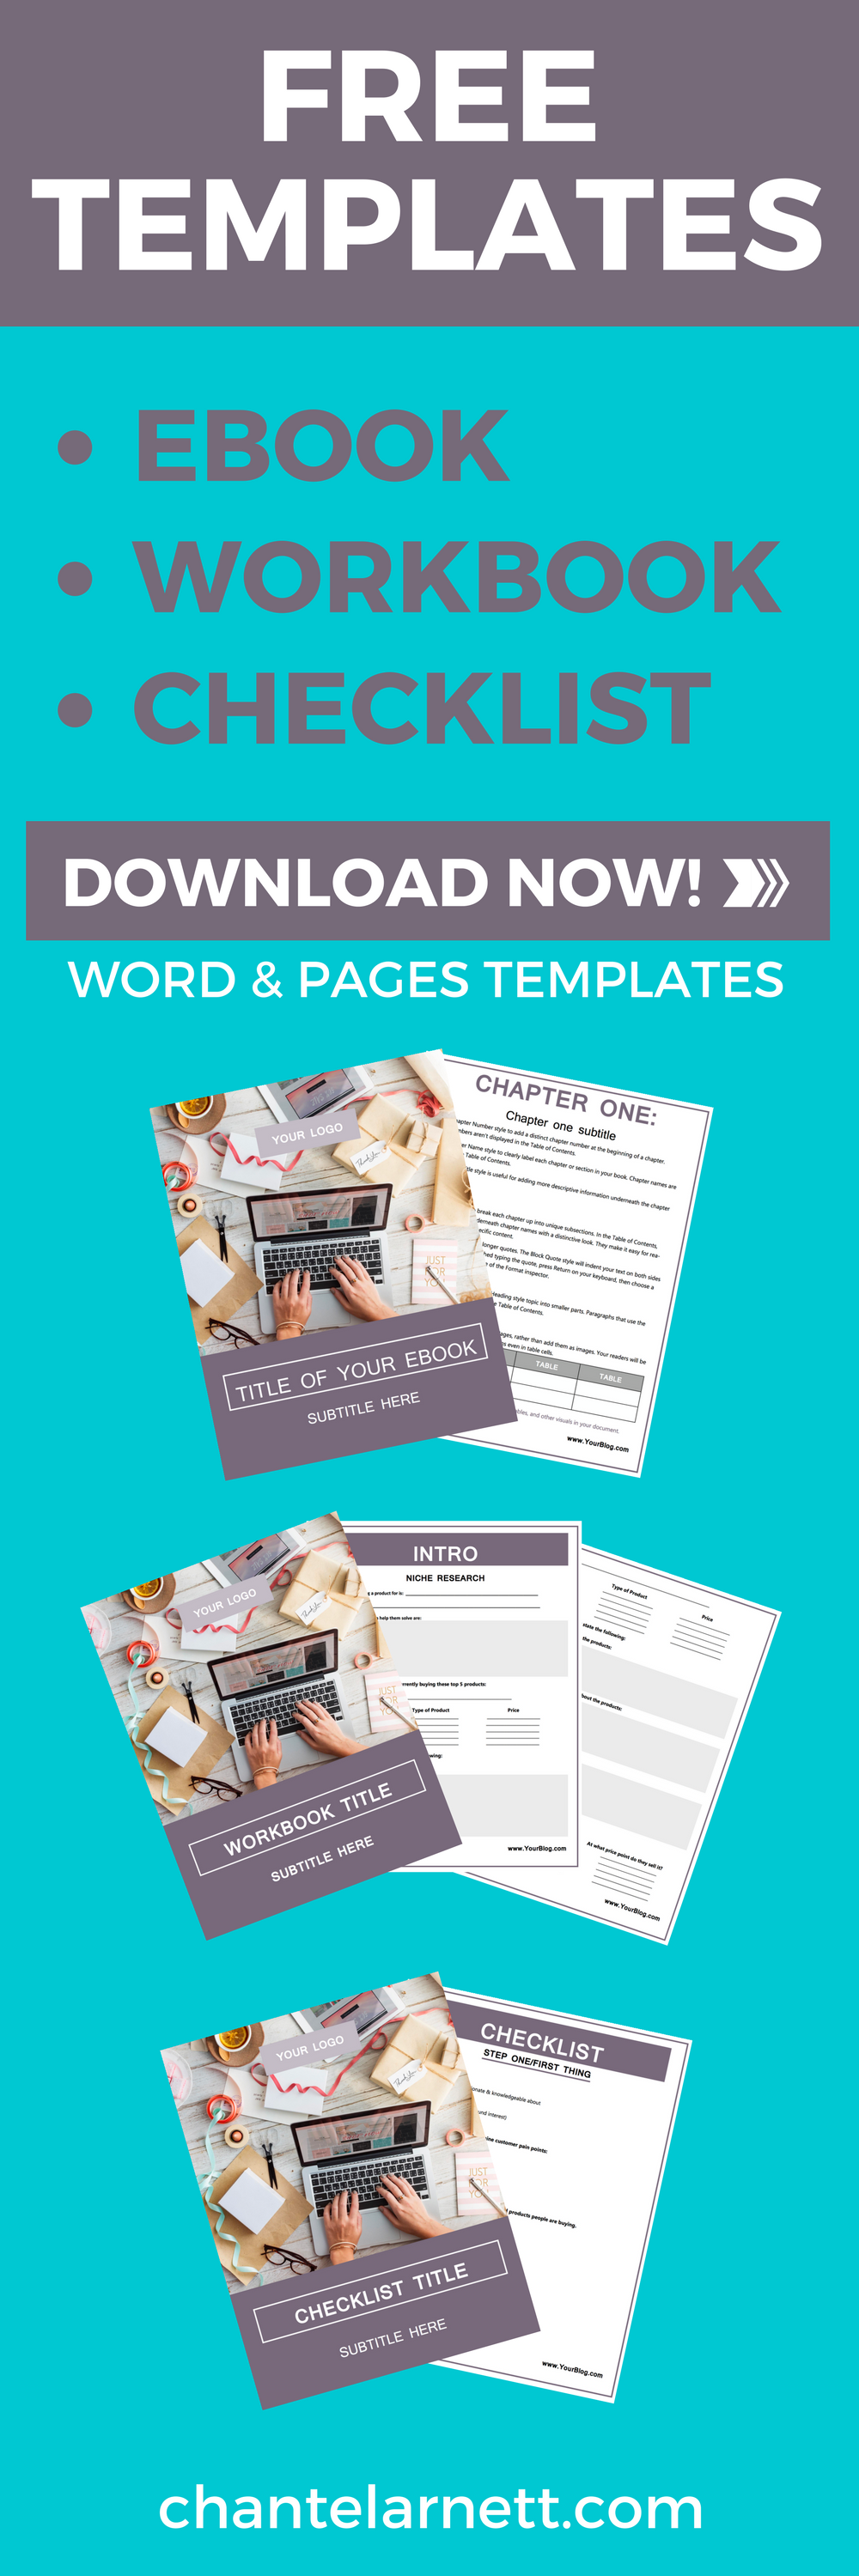 Three free customizable templates lead magnet email list and magnets pdf free editable templates have you always wanted to create your own checklists ebooks fandeluxe Gallery